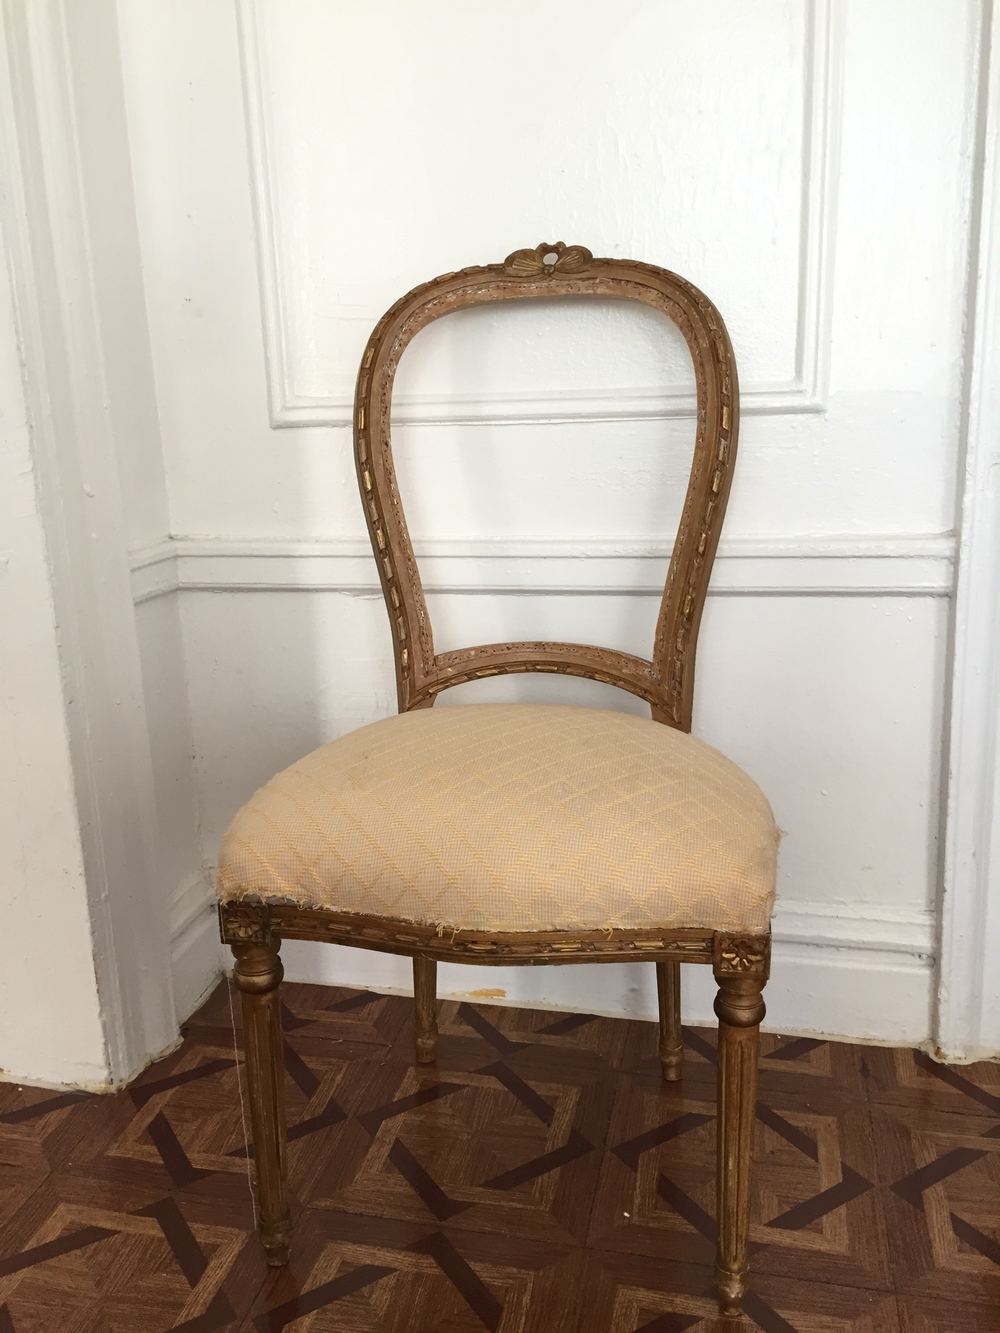 craigslist Finds #1 (Vintage French Chairs)